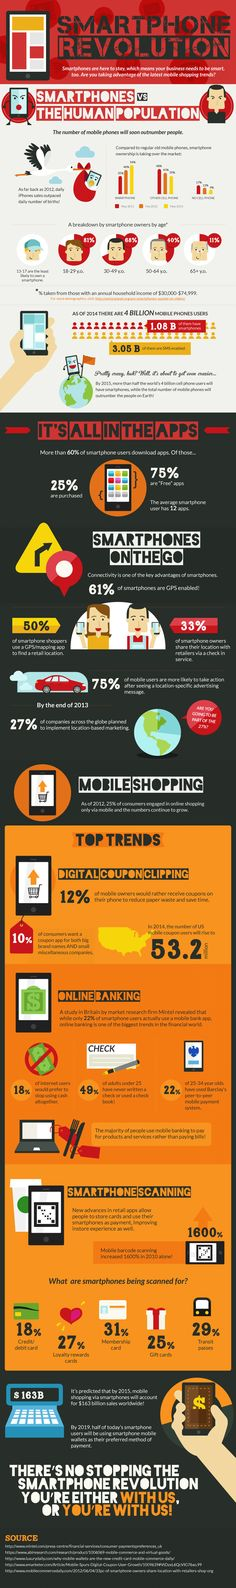 Smartphones are Changing the Marketing Landscape